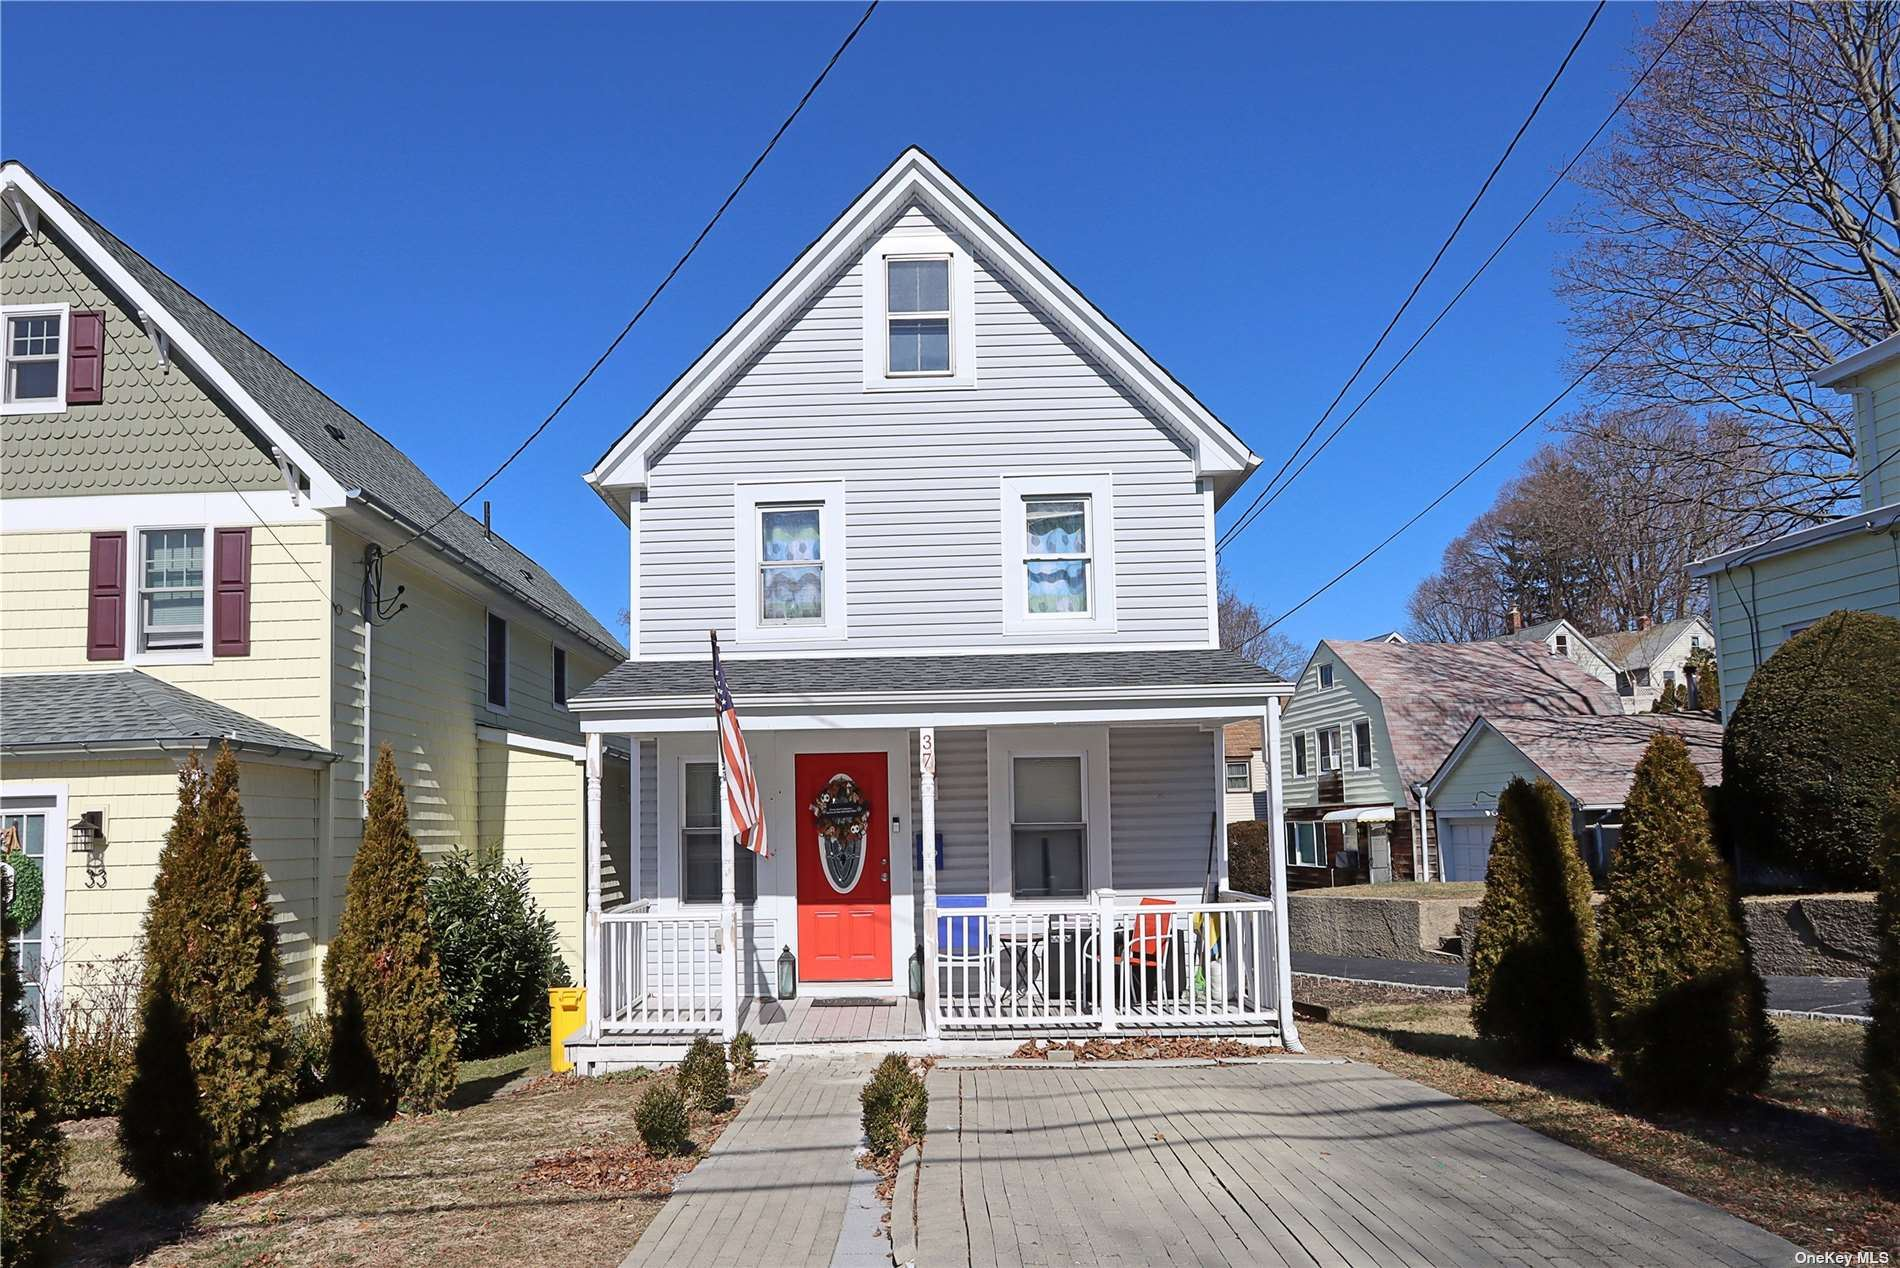 37 Weeks Avenue, Oyster Bay, NY 11771 - MLS#: 3304994